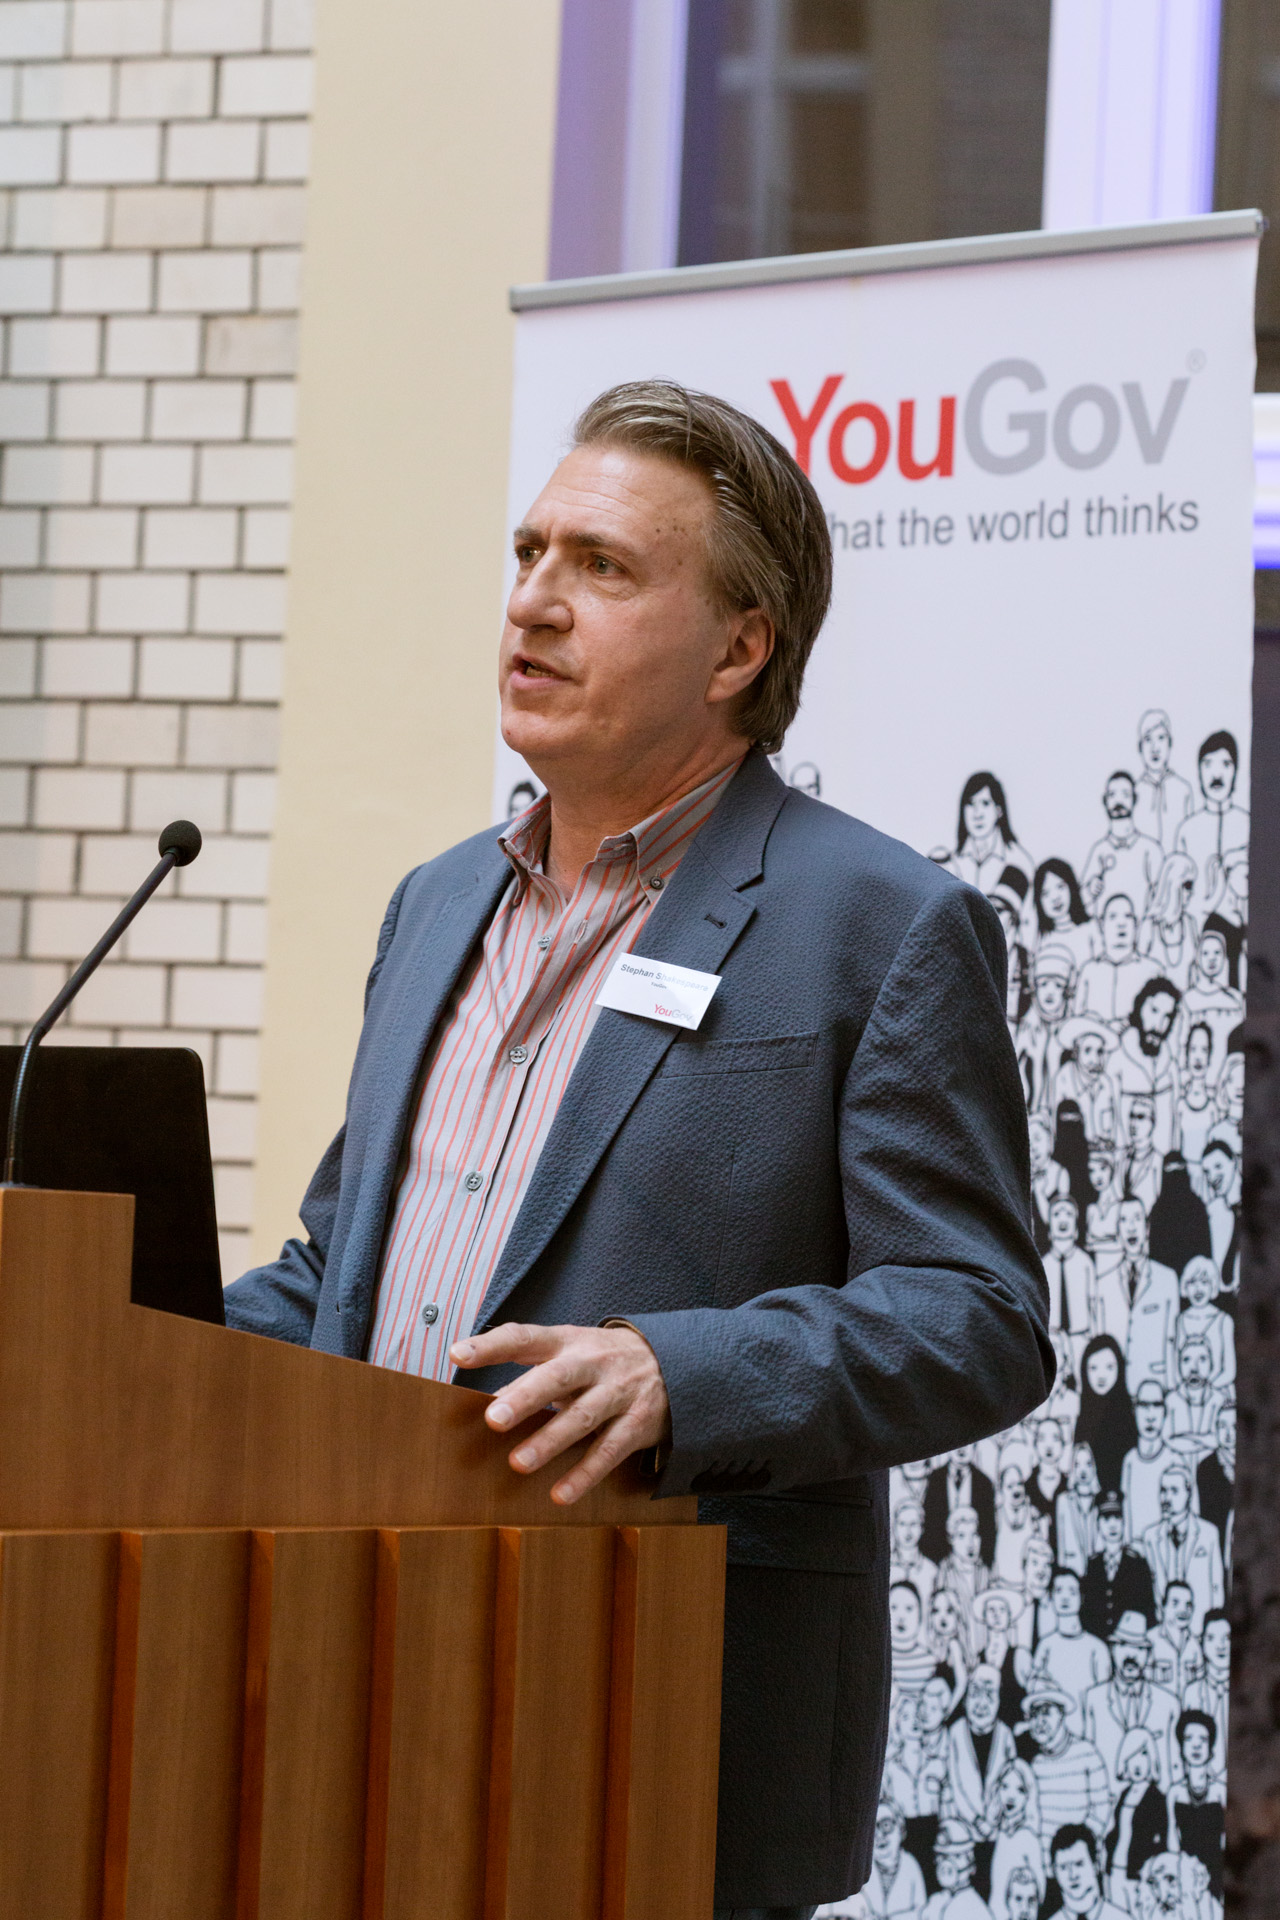 YouGov Founder & Global CEO Stephan Shakespeare bei seiner Rede